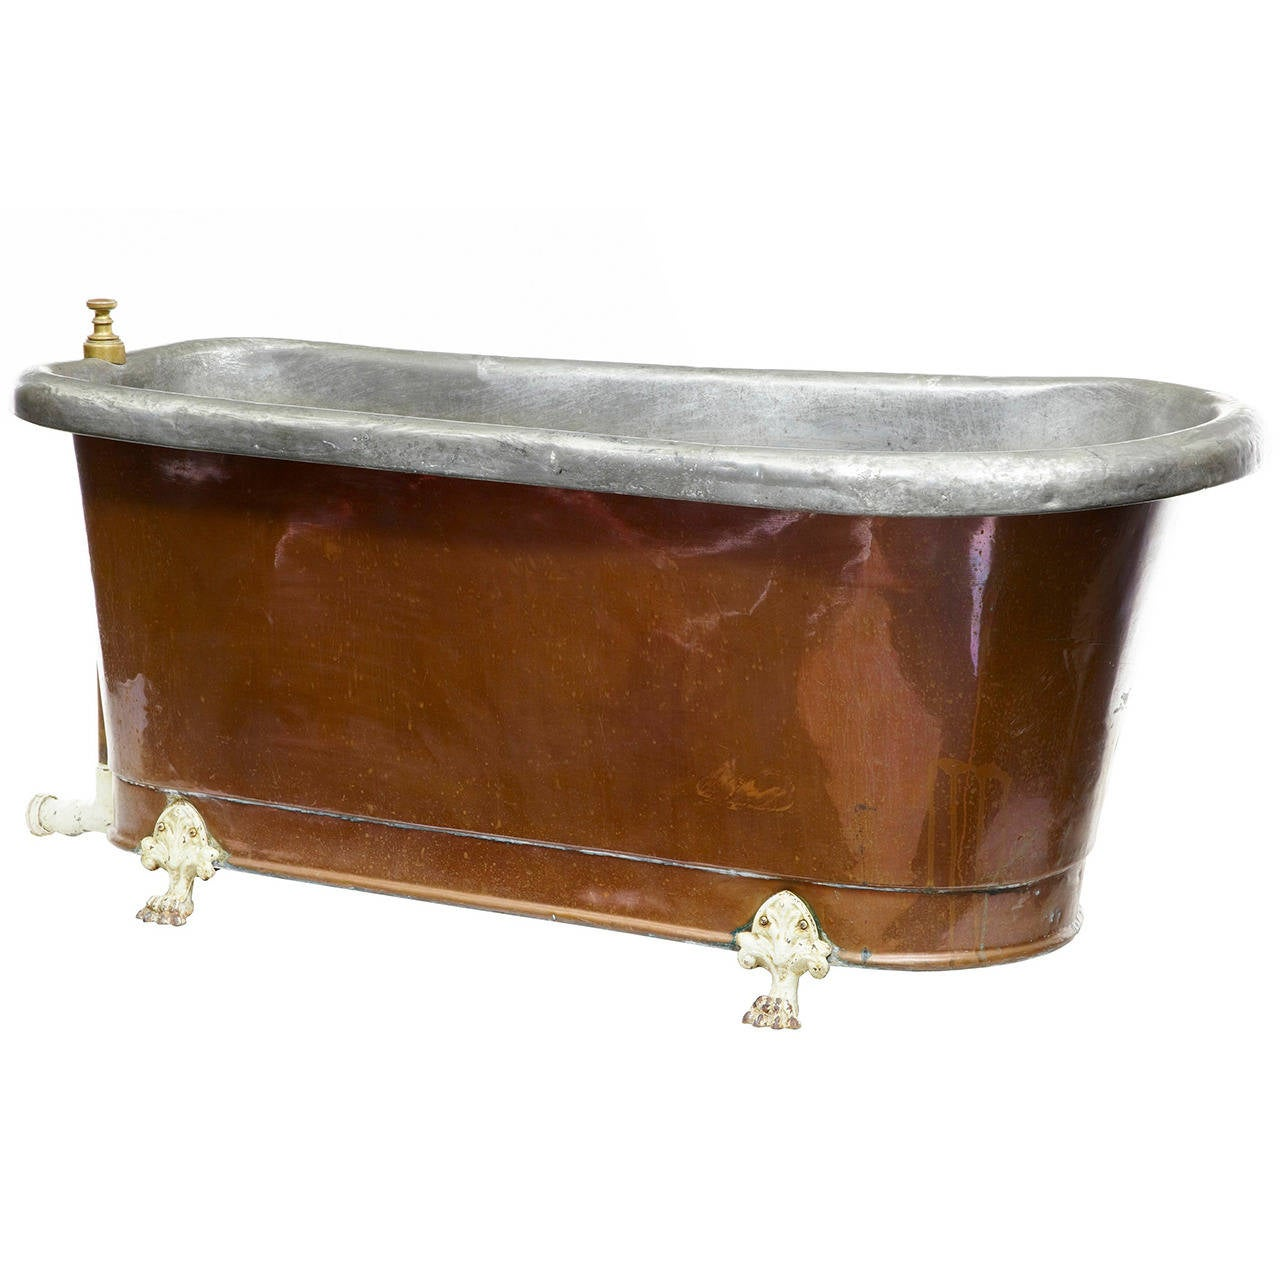 19th Century Victorian Roll Top Copper Bath Tub At 1stdibs